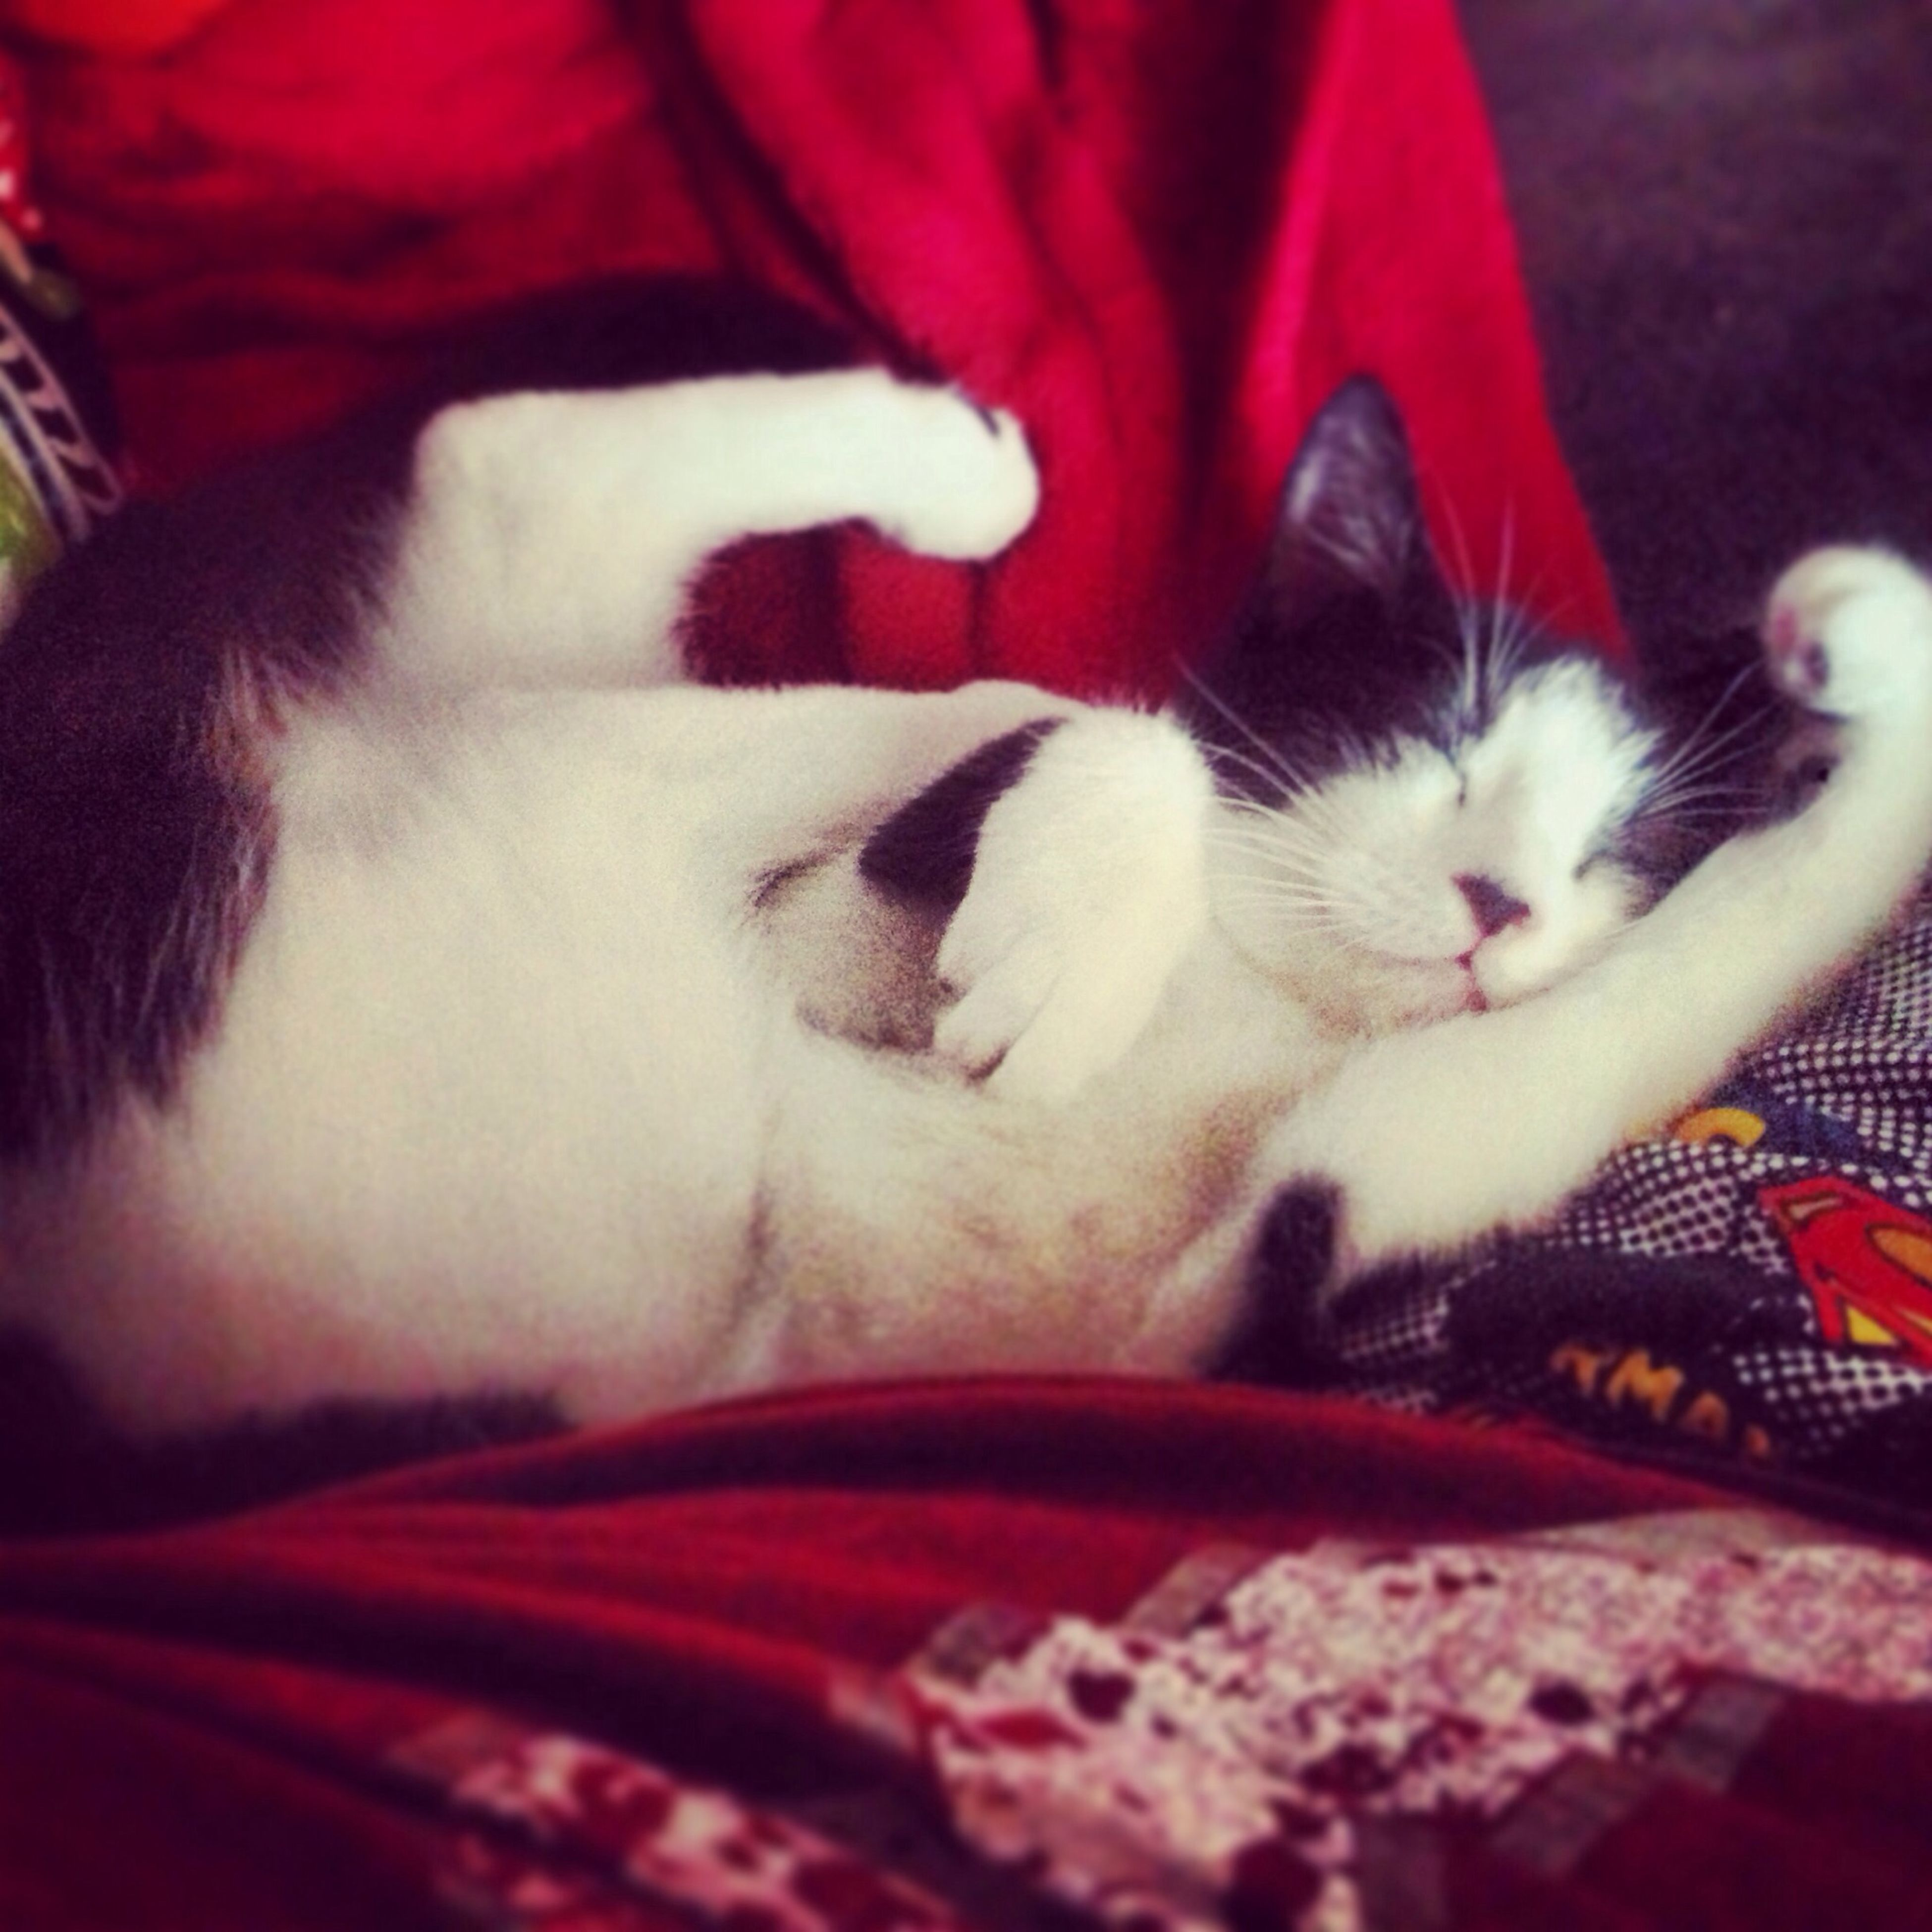 domestic animals, pets, domestic cat, animal themes, mammal, cat, indoors, one animal, relaxation, feline, sleeping, resting, lying down, bed, eyes closed, whisker, comfortable, sofa, close-up, blanket